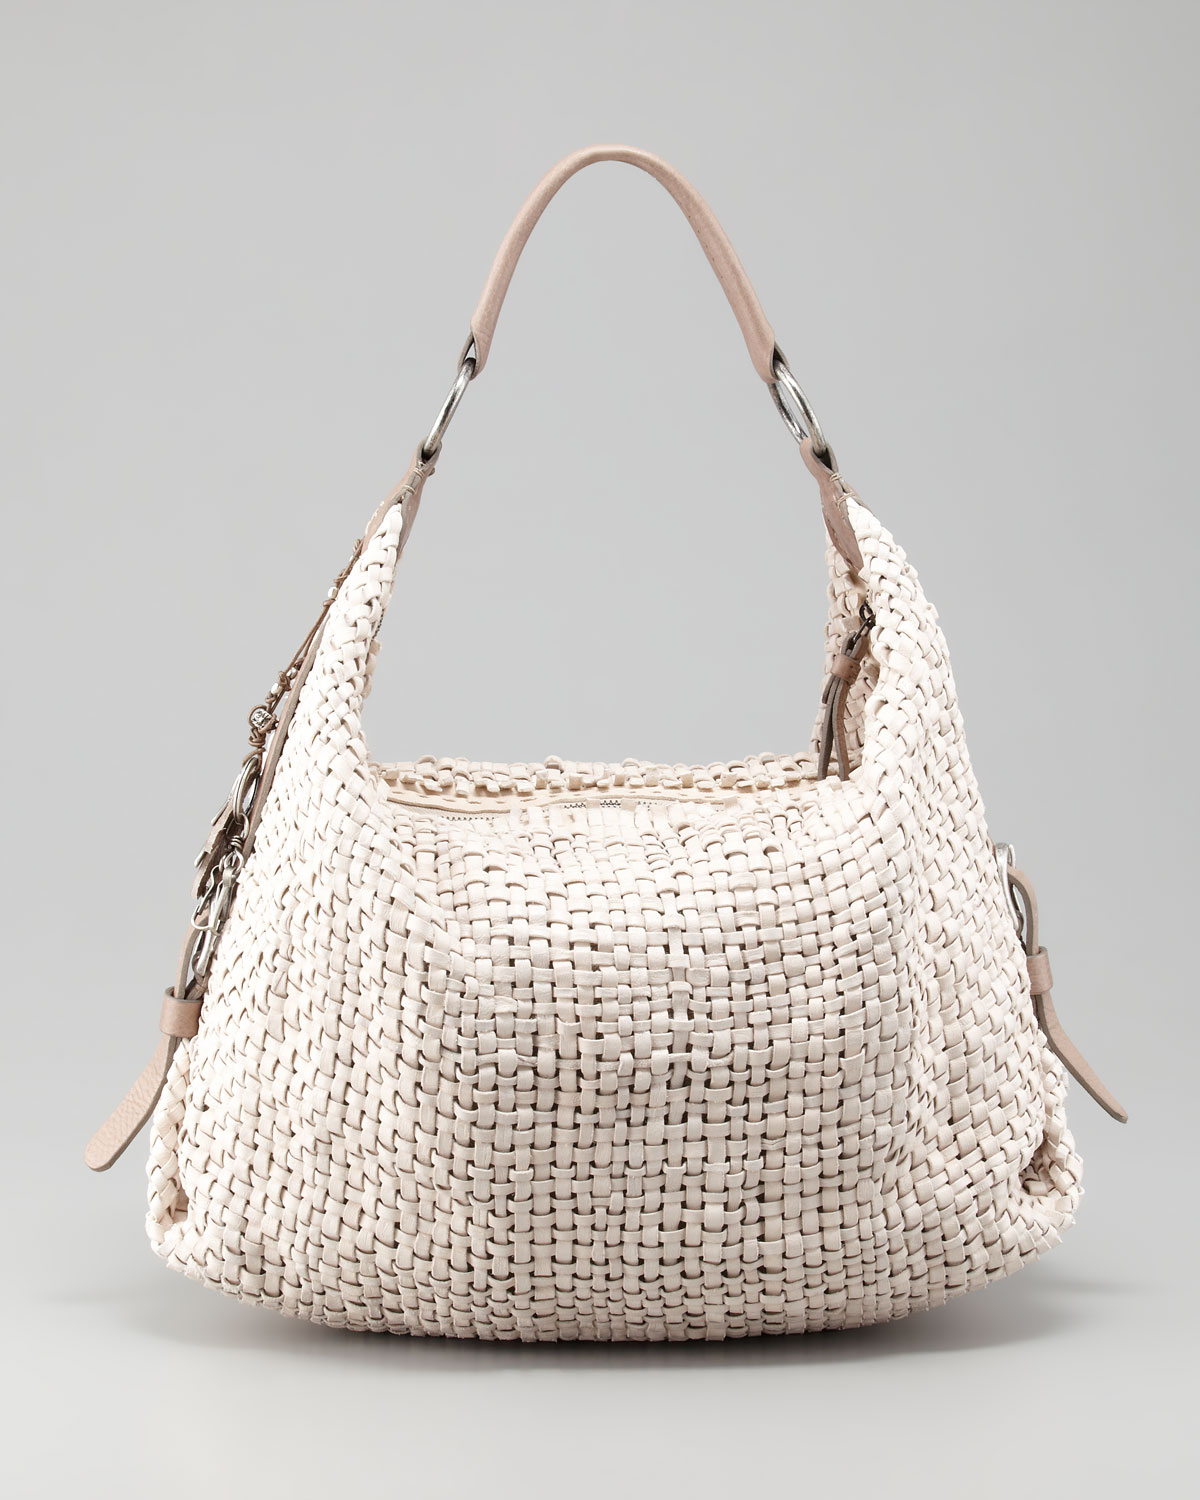 Henry beguelin Woven Leather Hobo Bag in Natural | Lyst